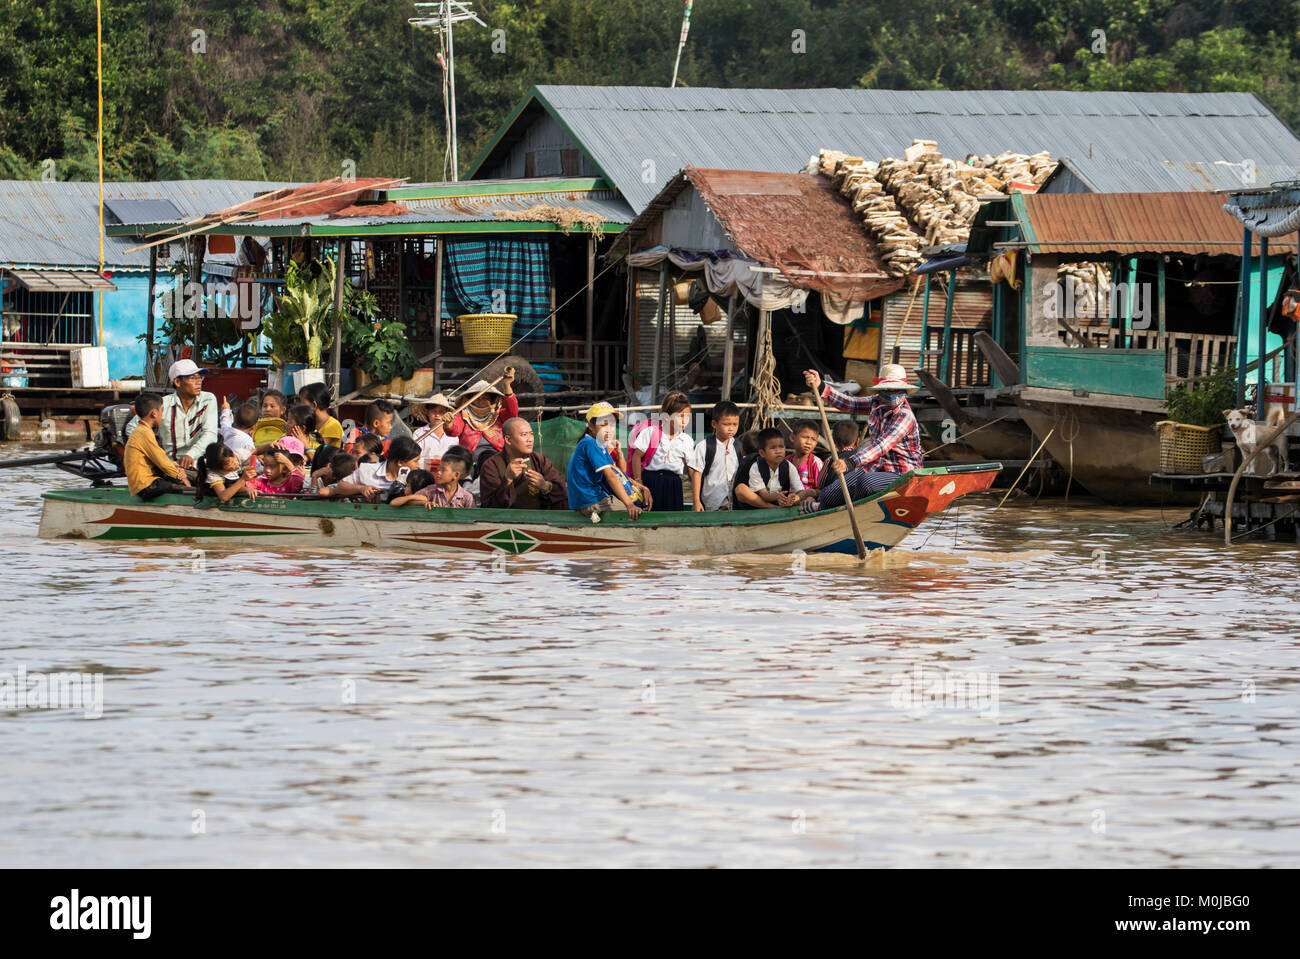 People in a public boat by a floating village in the Tonle Sap; Siem Reap, Cambodia Stock Photo